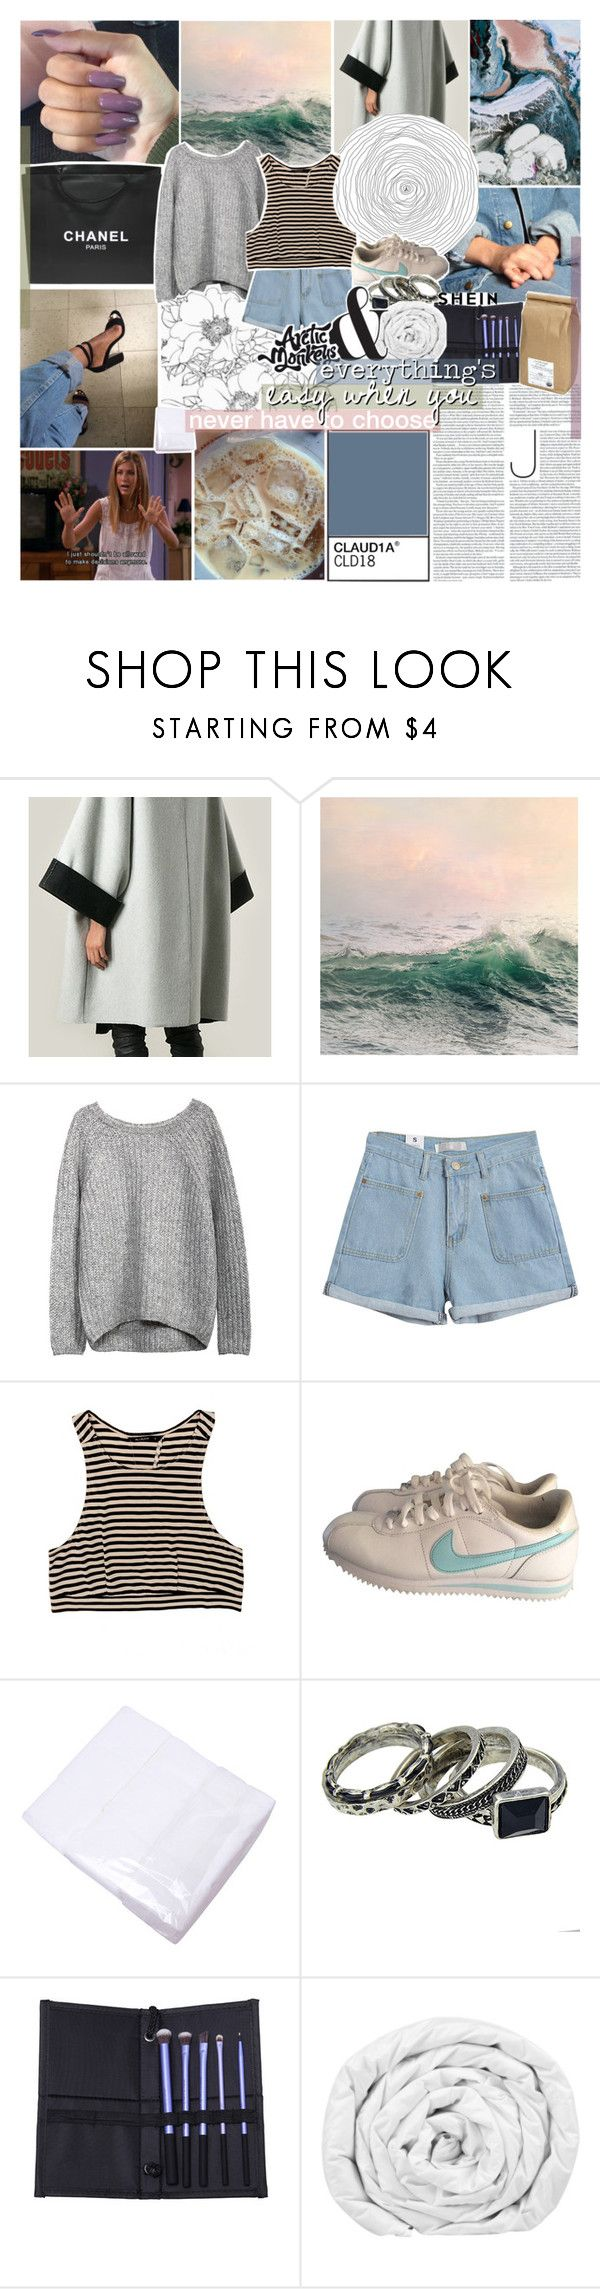 """give me everything that you want to forget"" by kristen-gregory-sexy-sports-babe ❤ liked on Polyvore featuring Viktor & Rolf, Chanel, WALL, Chicnova Fashion, NIKE, KEEP ME, Brinkhaus and Davidson's"